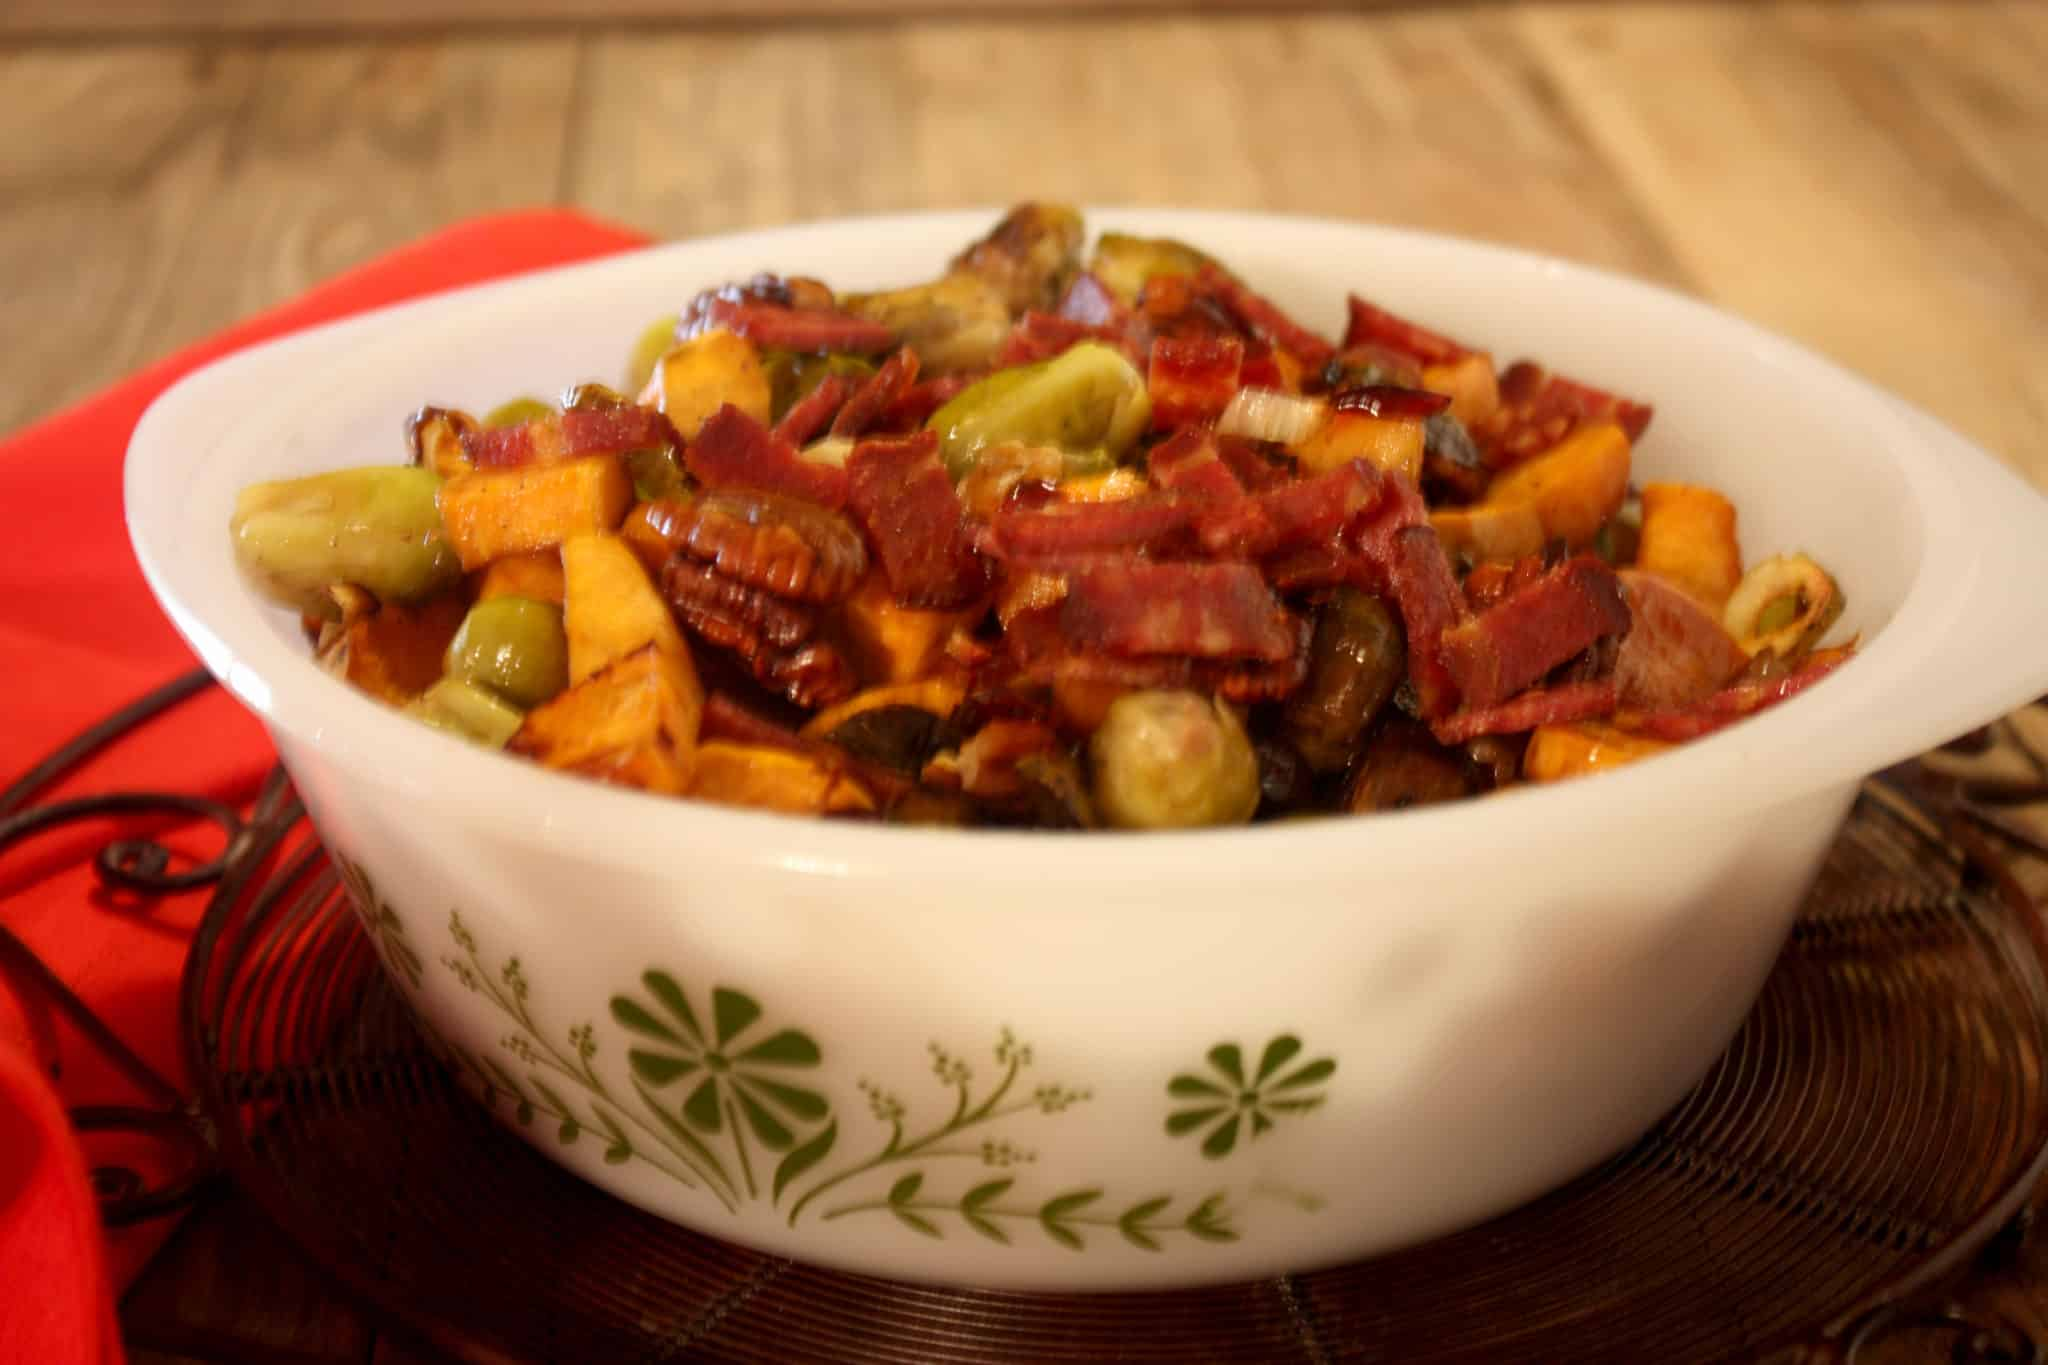 Roasted Brussels Sprouts and Sweet Potatoes